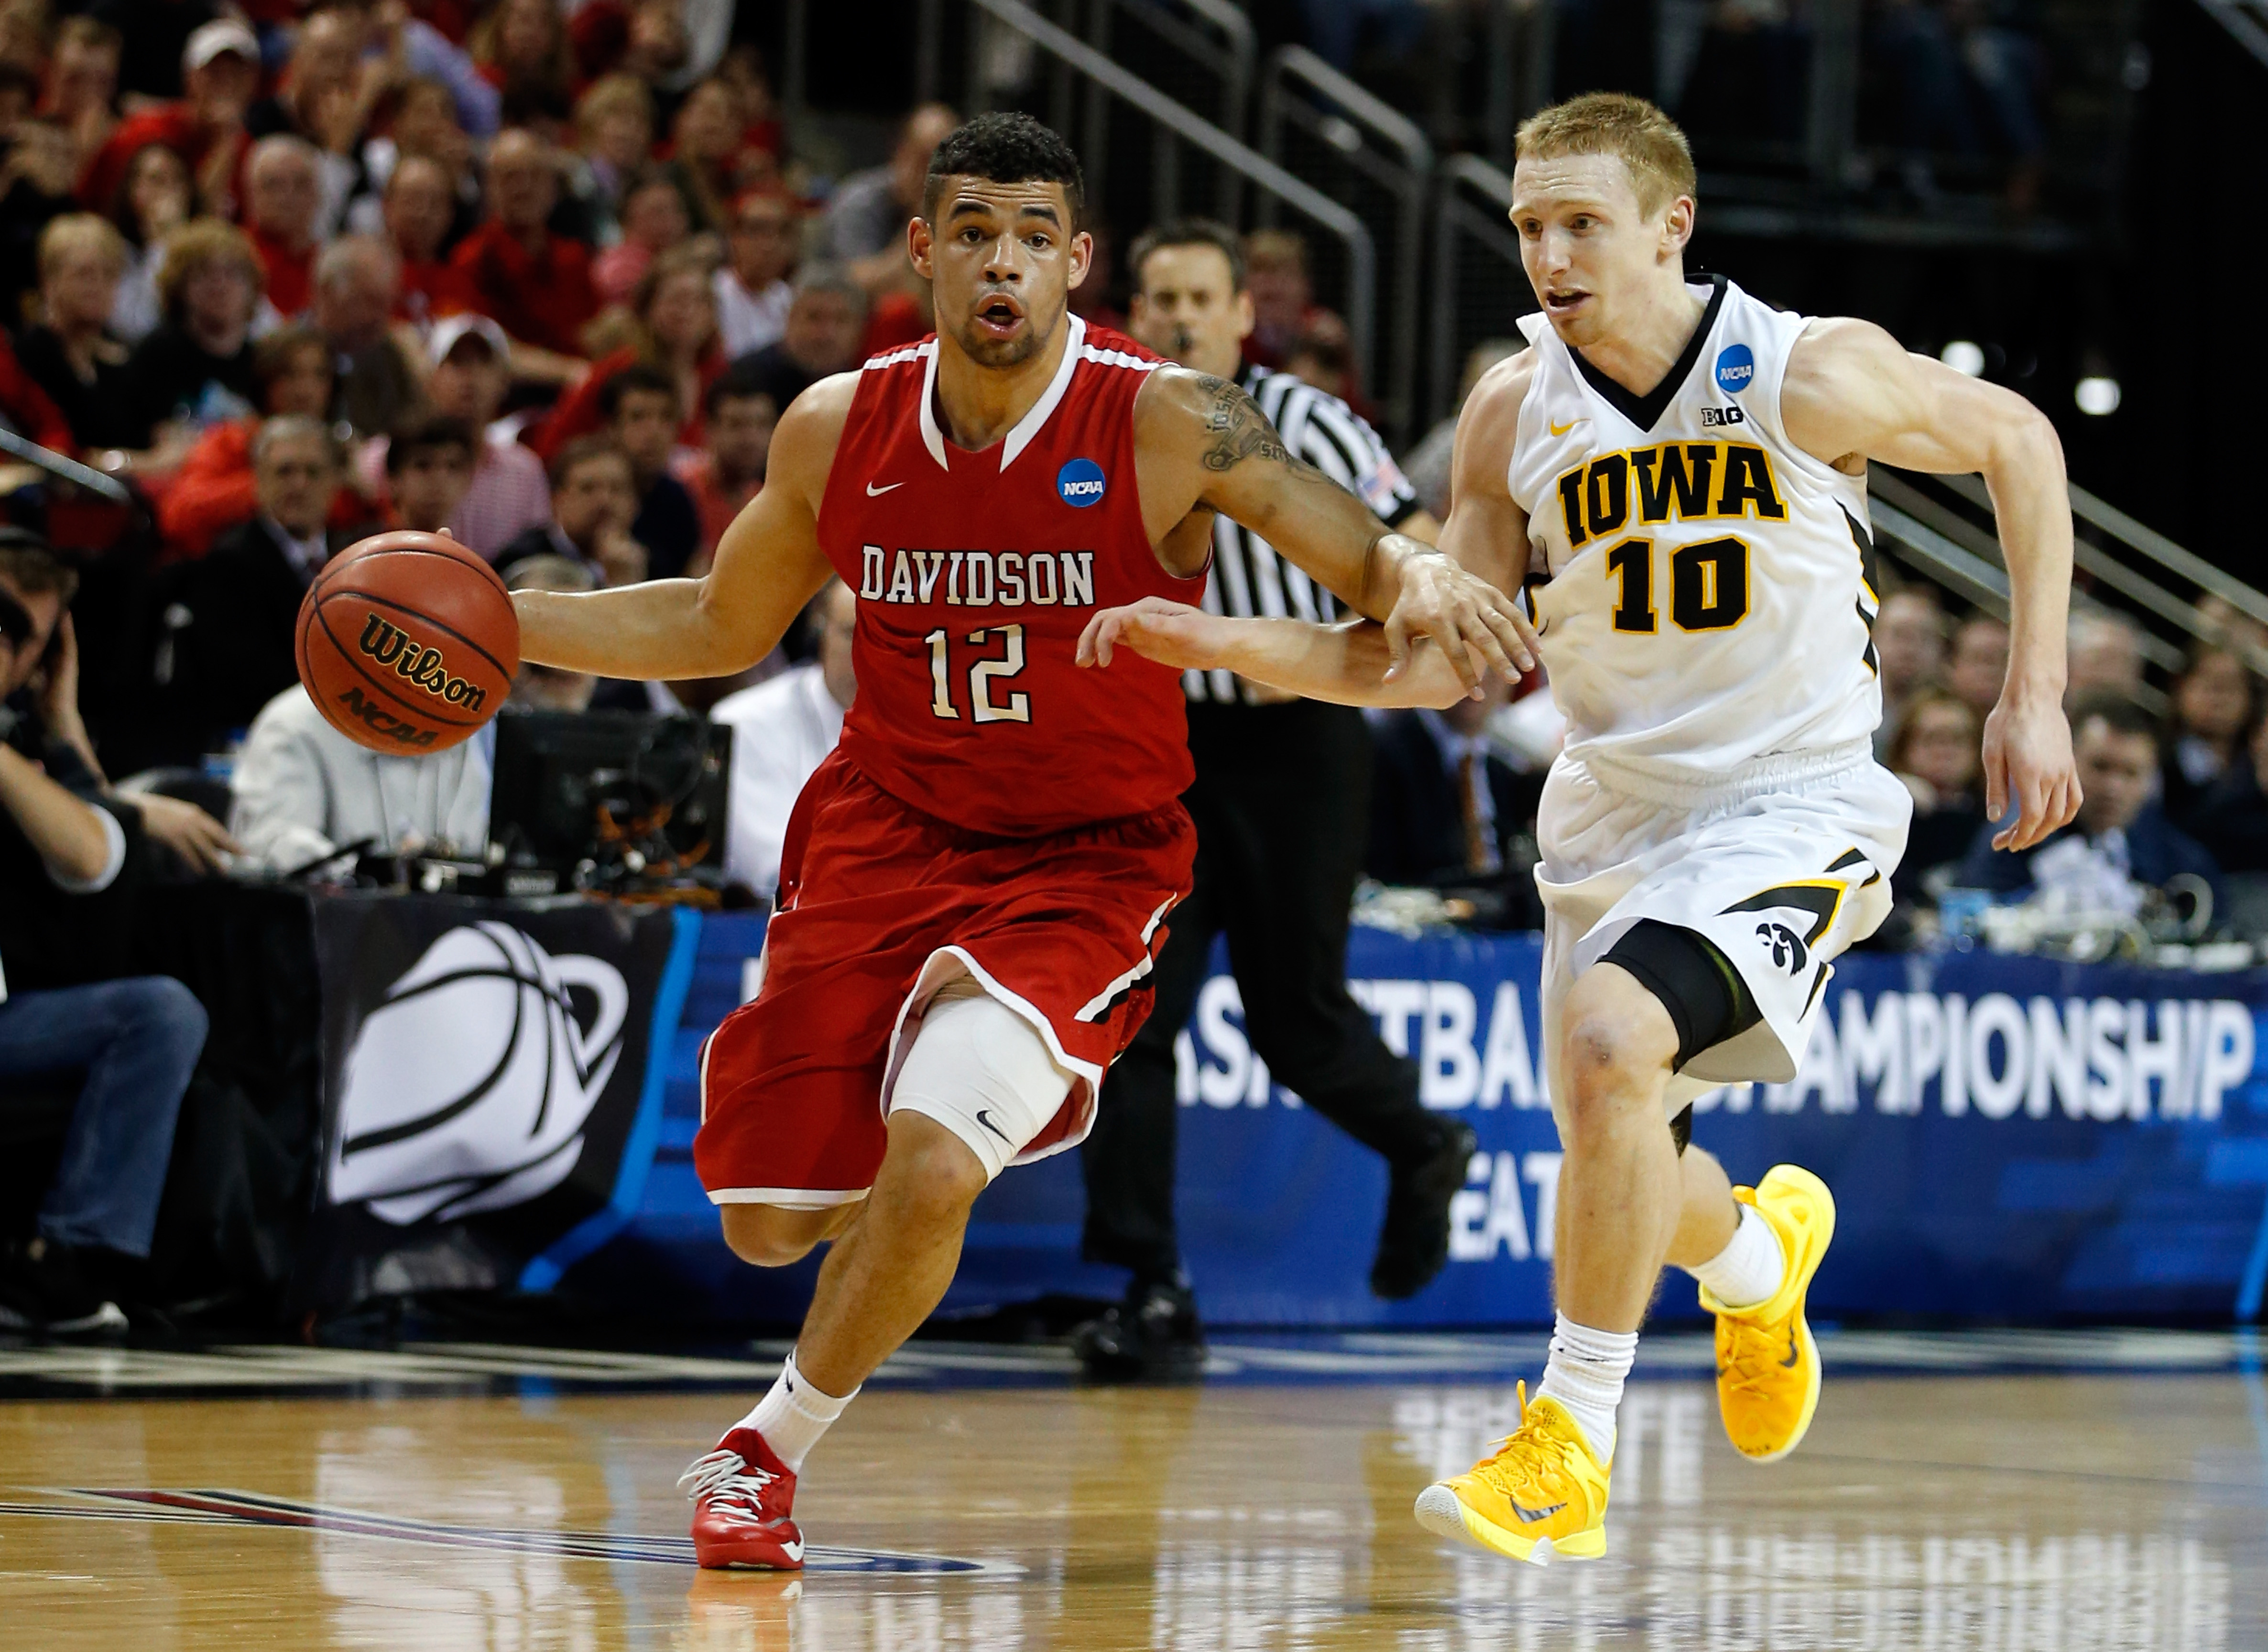 SEATTLE, WA - MARCH 20: Jack Gibbs #12 of the Davidson Wildcats dribbles the ball against Mike Gesell #10 of the Iowa Hawkeyes during the second round of the 2015 NCAA Men's Basketball Tournament at KeyArena on March 20, 2015 in Seattle, Washington. (Photo by Ezra Shaw/Getty Images)